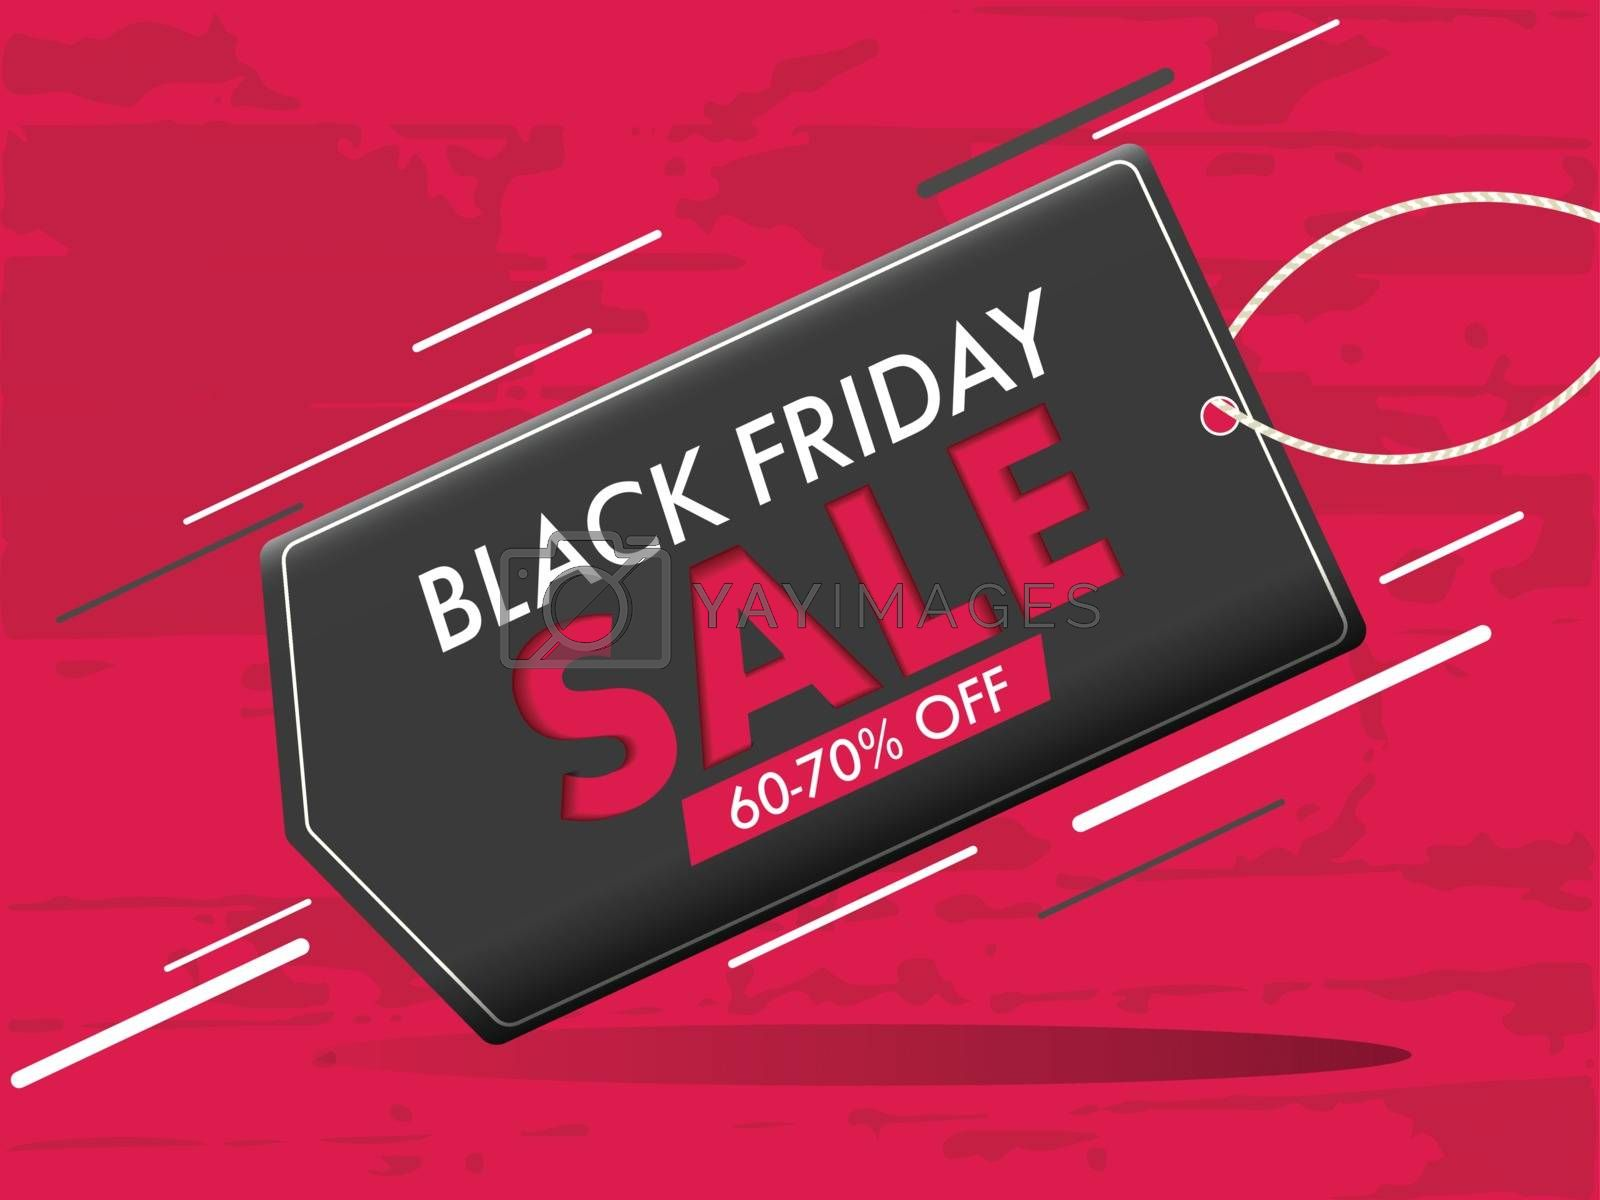 Stylish poster or banner design, Sale tag with 60-70% discount offer on red texture background for Black friday concept.